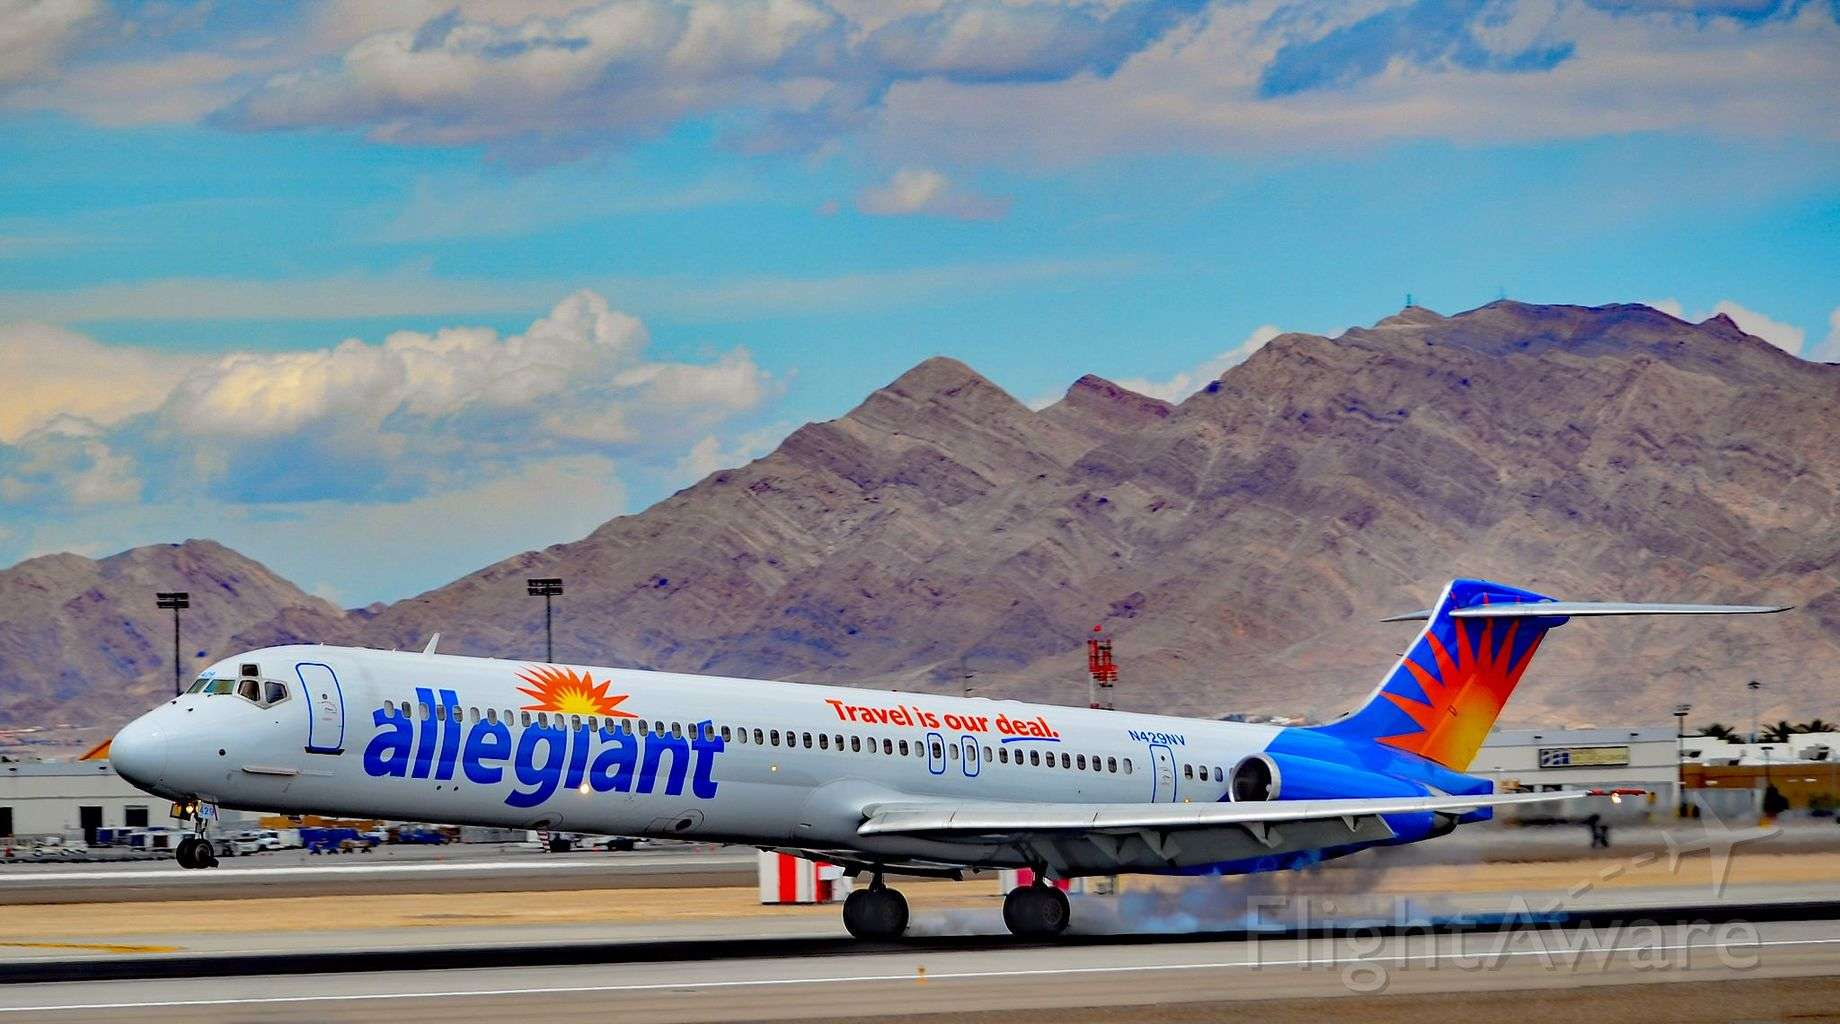 Allegiant pilots won't let their families fly on Allegiant!